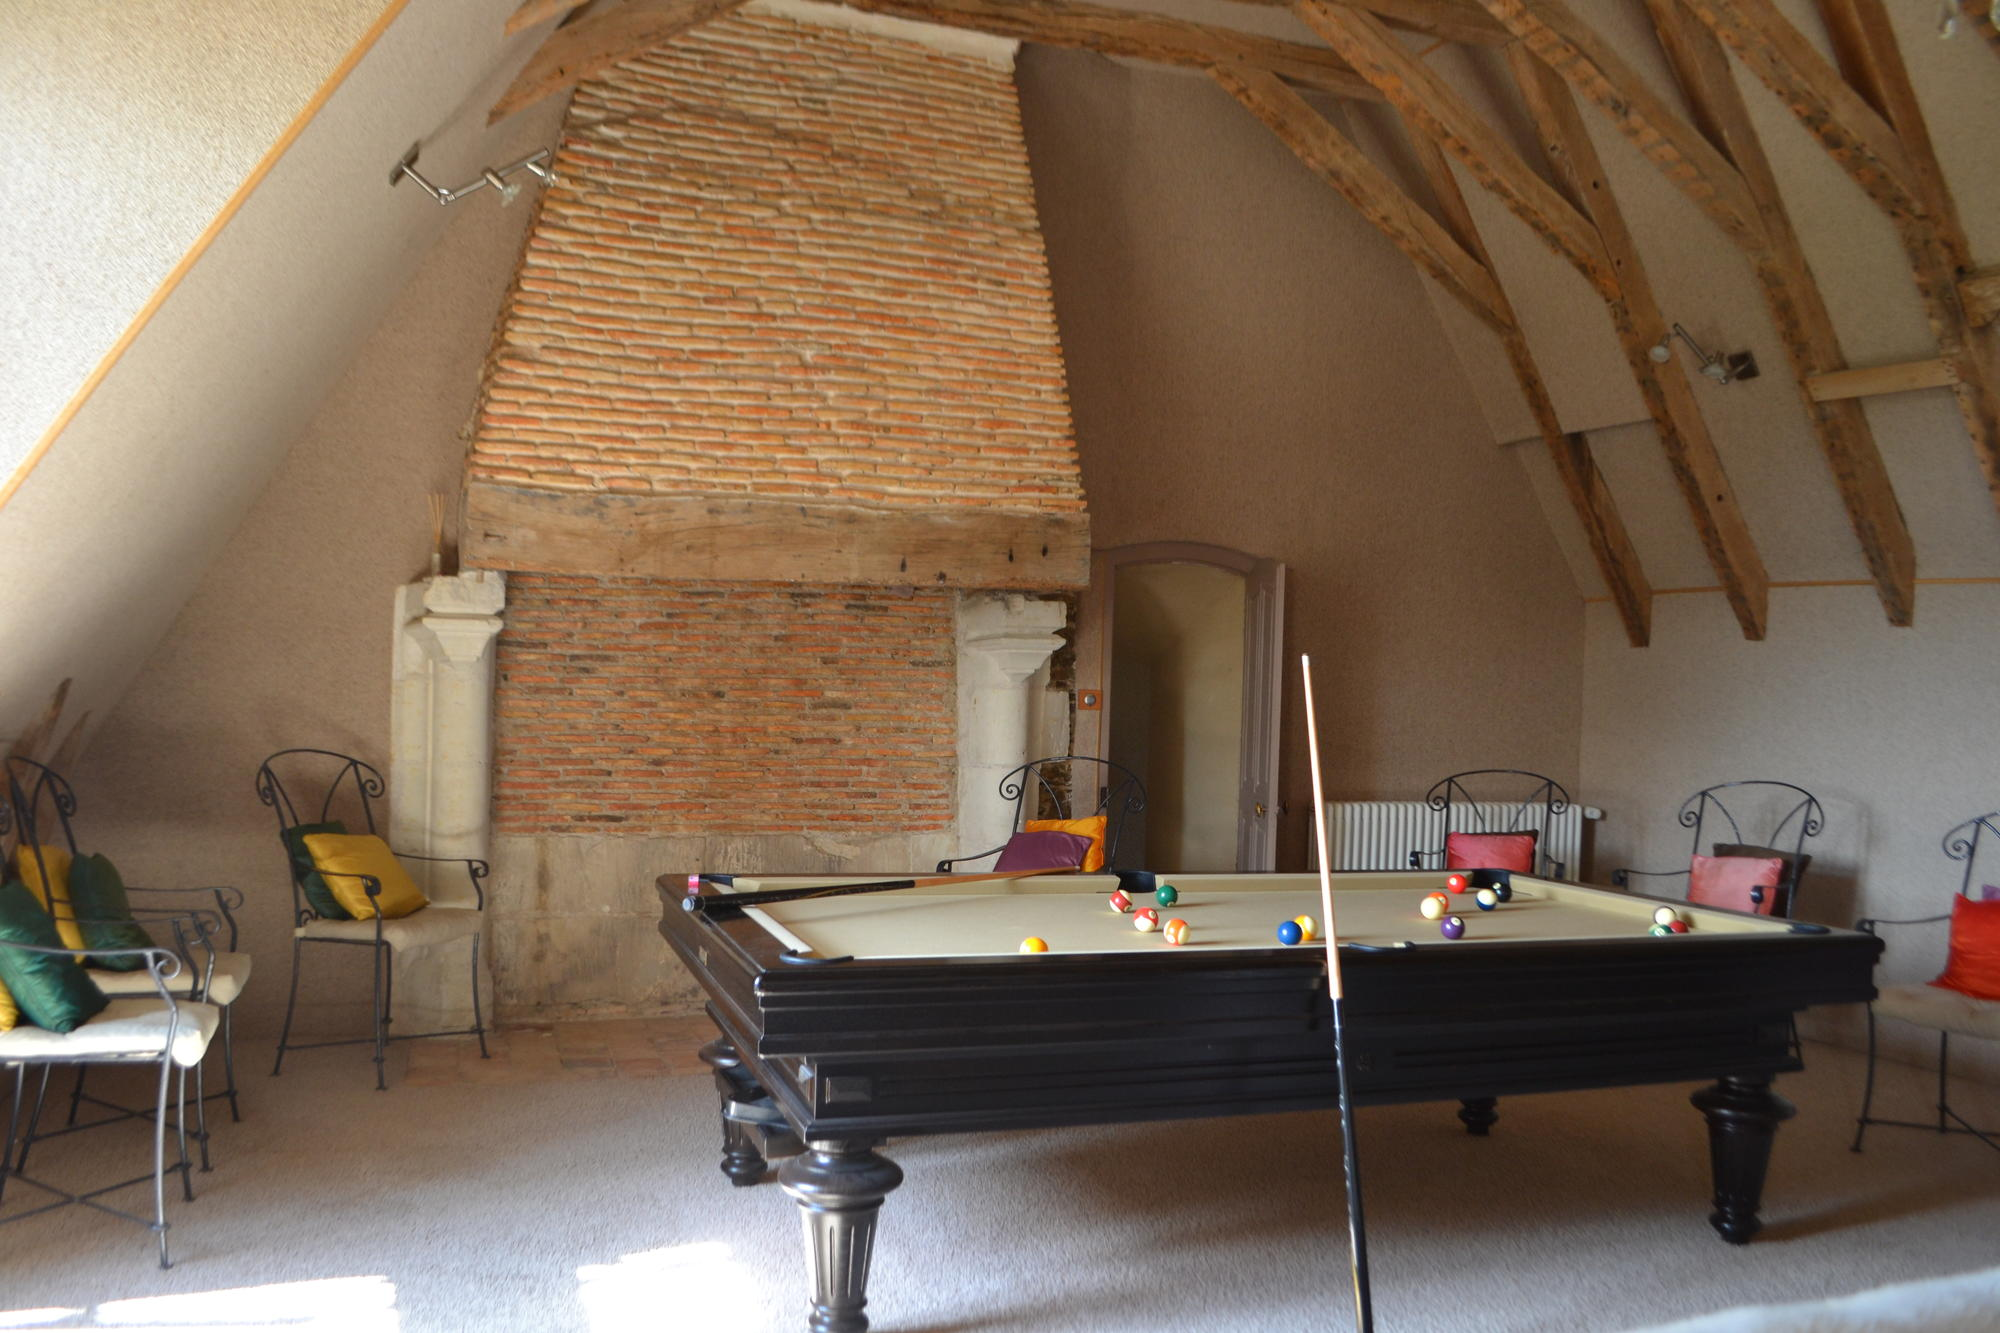 snooker pool home cinema chateau epinay